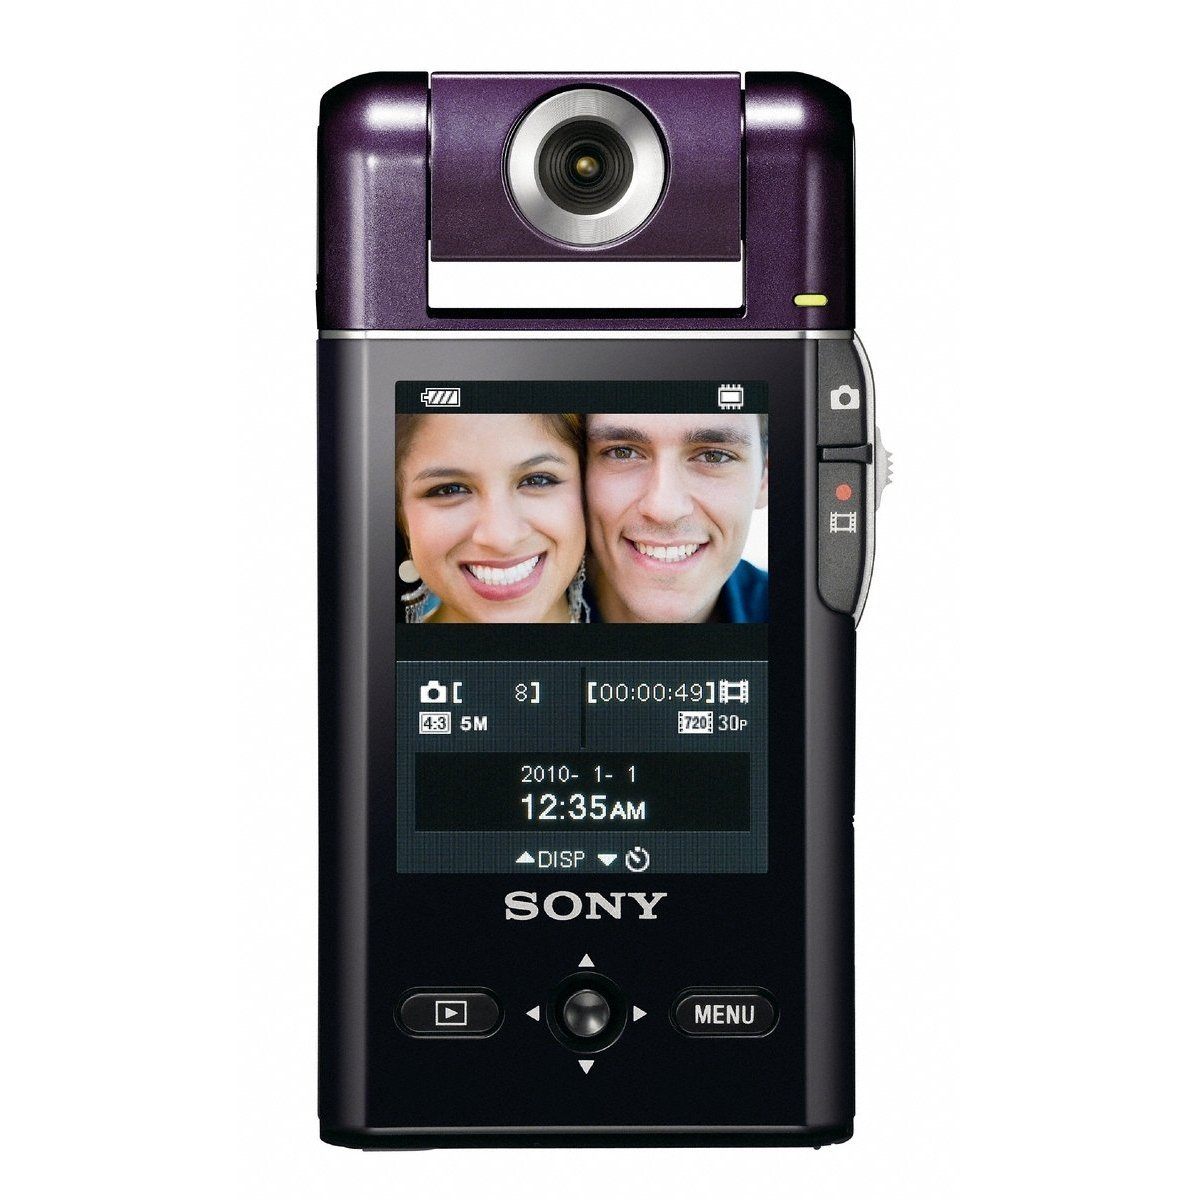 Sony MHS-PM5 bloggie HD Video Camera (Violet) - FREE SHIPPING!!